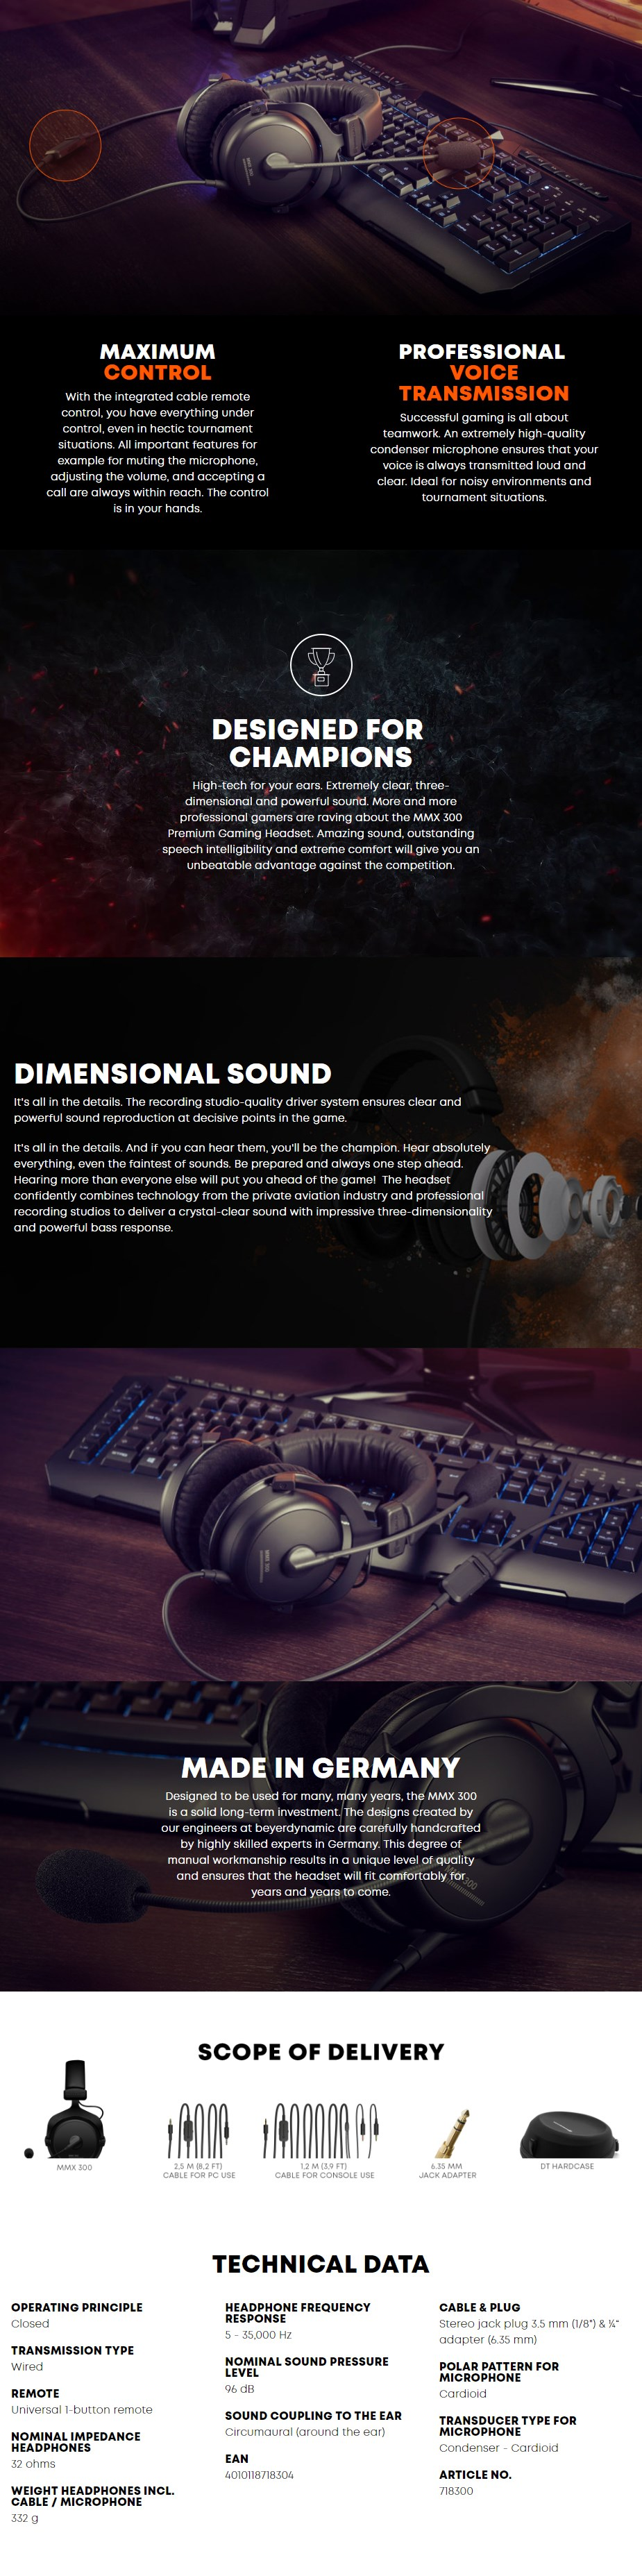 Beyerdynamic MMX 300 Premium Gaming Closed-Back Headset - 2nd Generation - Overview 1